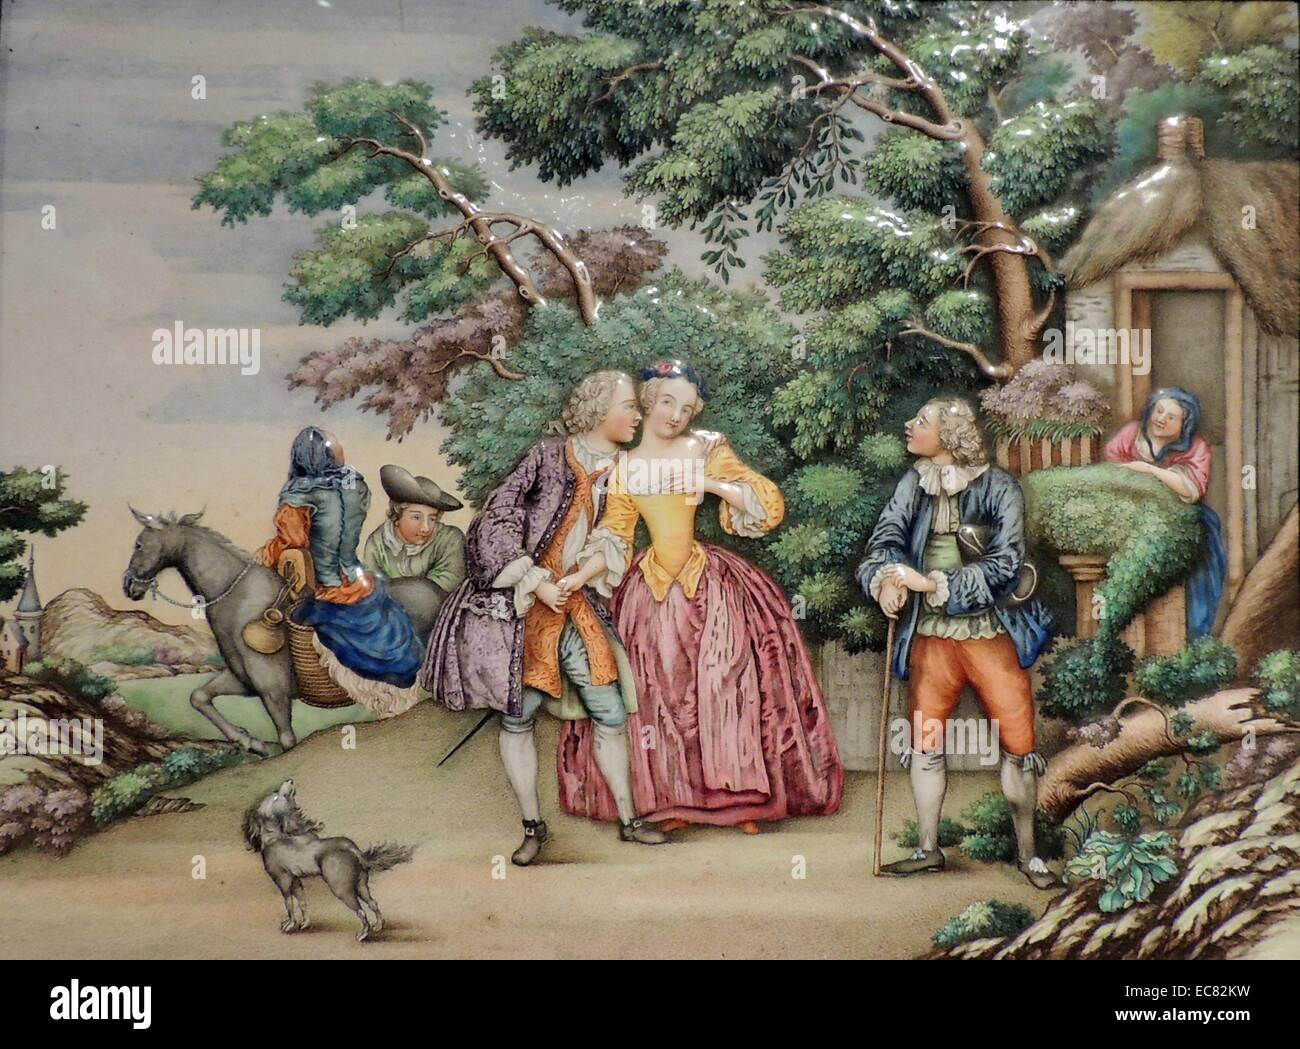 Plaque depicting scene with European people for a Dutch traders home in Canton - Stock Image